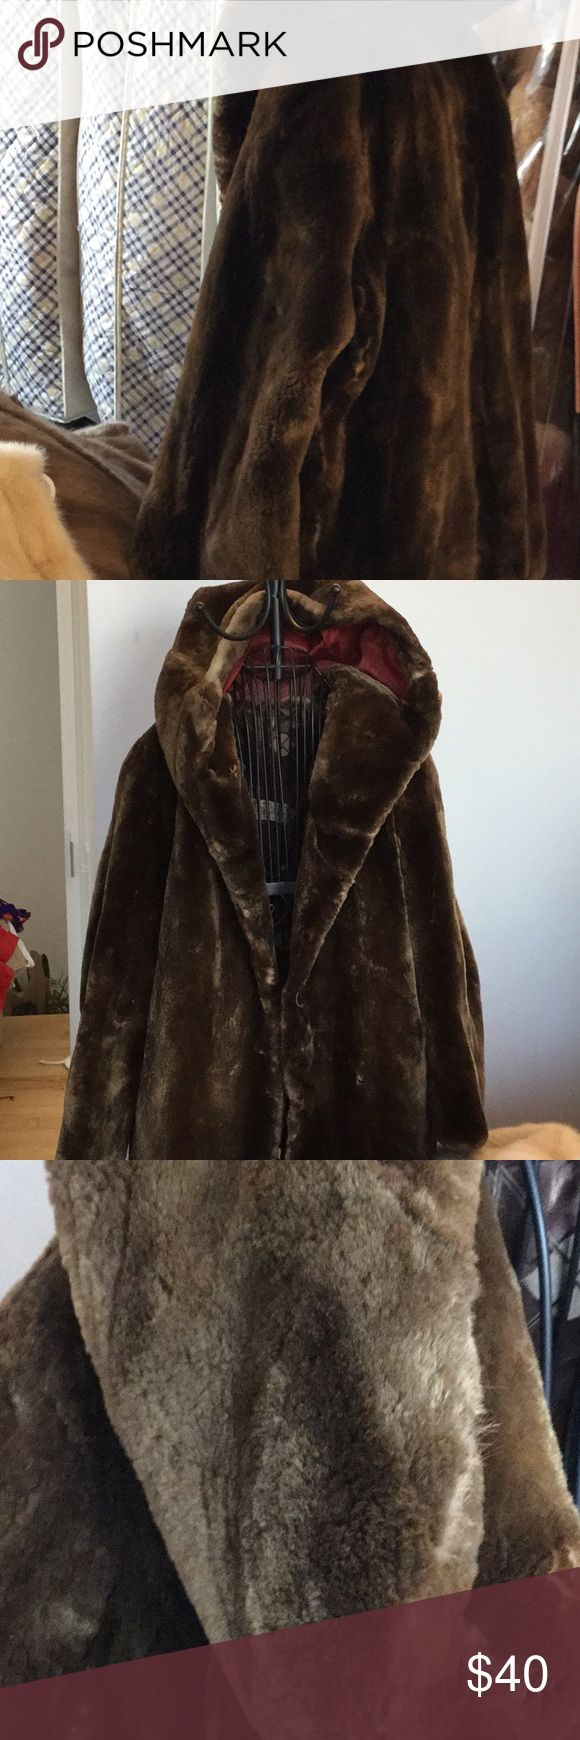 Sheared beaver vintage coat, L Fur soft, no shedding.  Down with cream colored undercoat and  cream colored areas. Pocket interior needs stitching. Some thinning of fabric inside at seams but not torn. Hooks to close, big hood.  NO odor. From France B Boutin Jackets & Coats